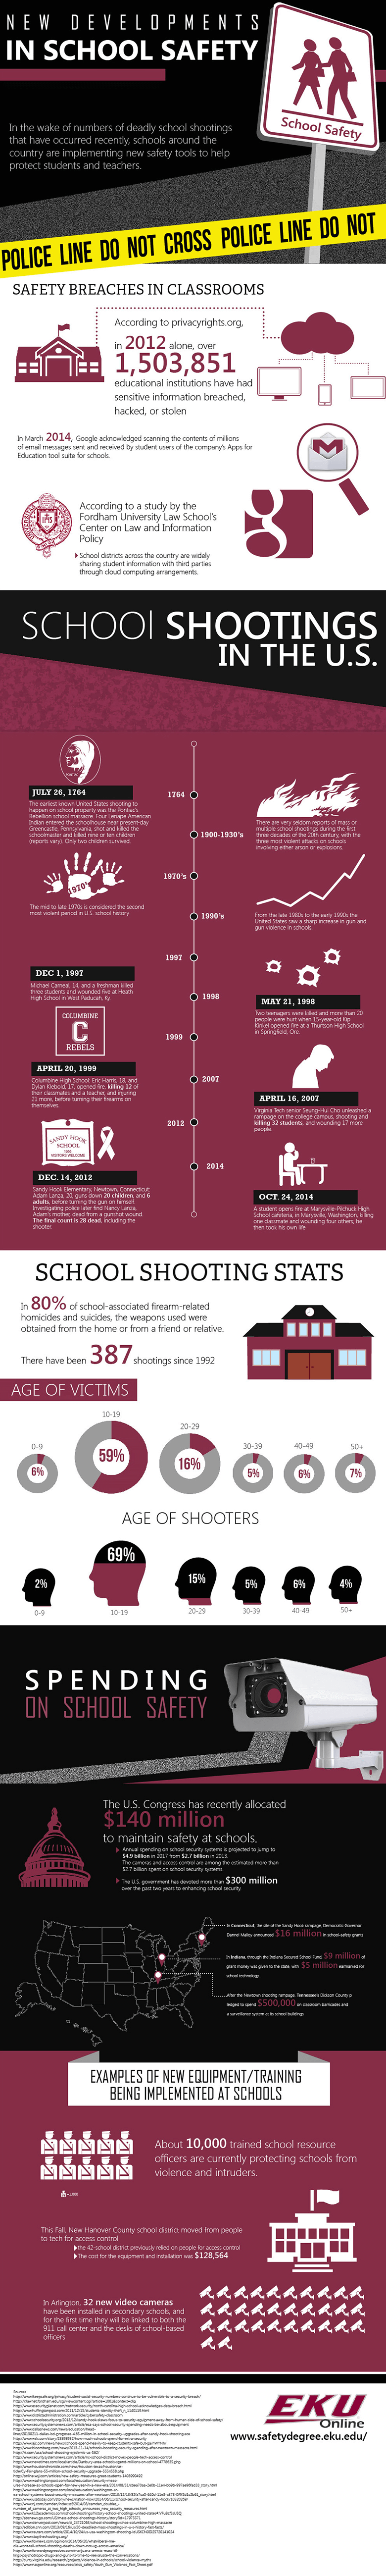 Infographic on New Developments in School Safety